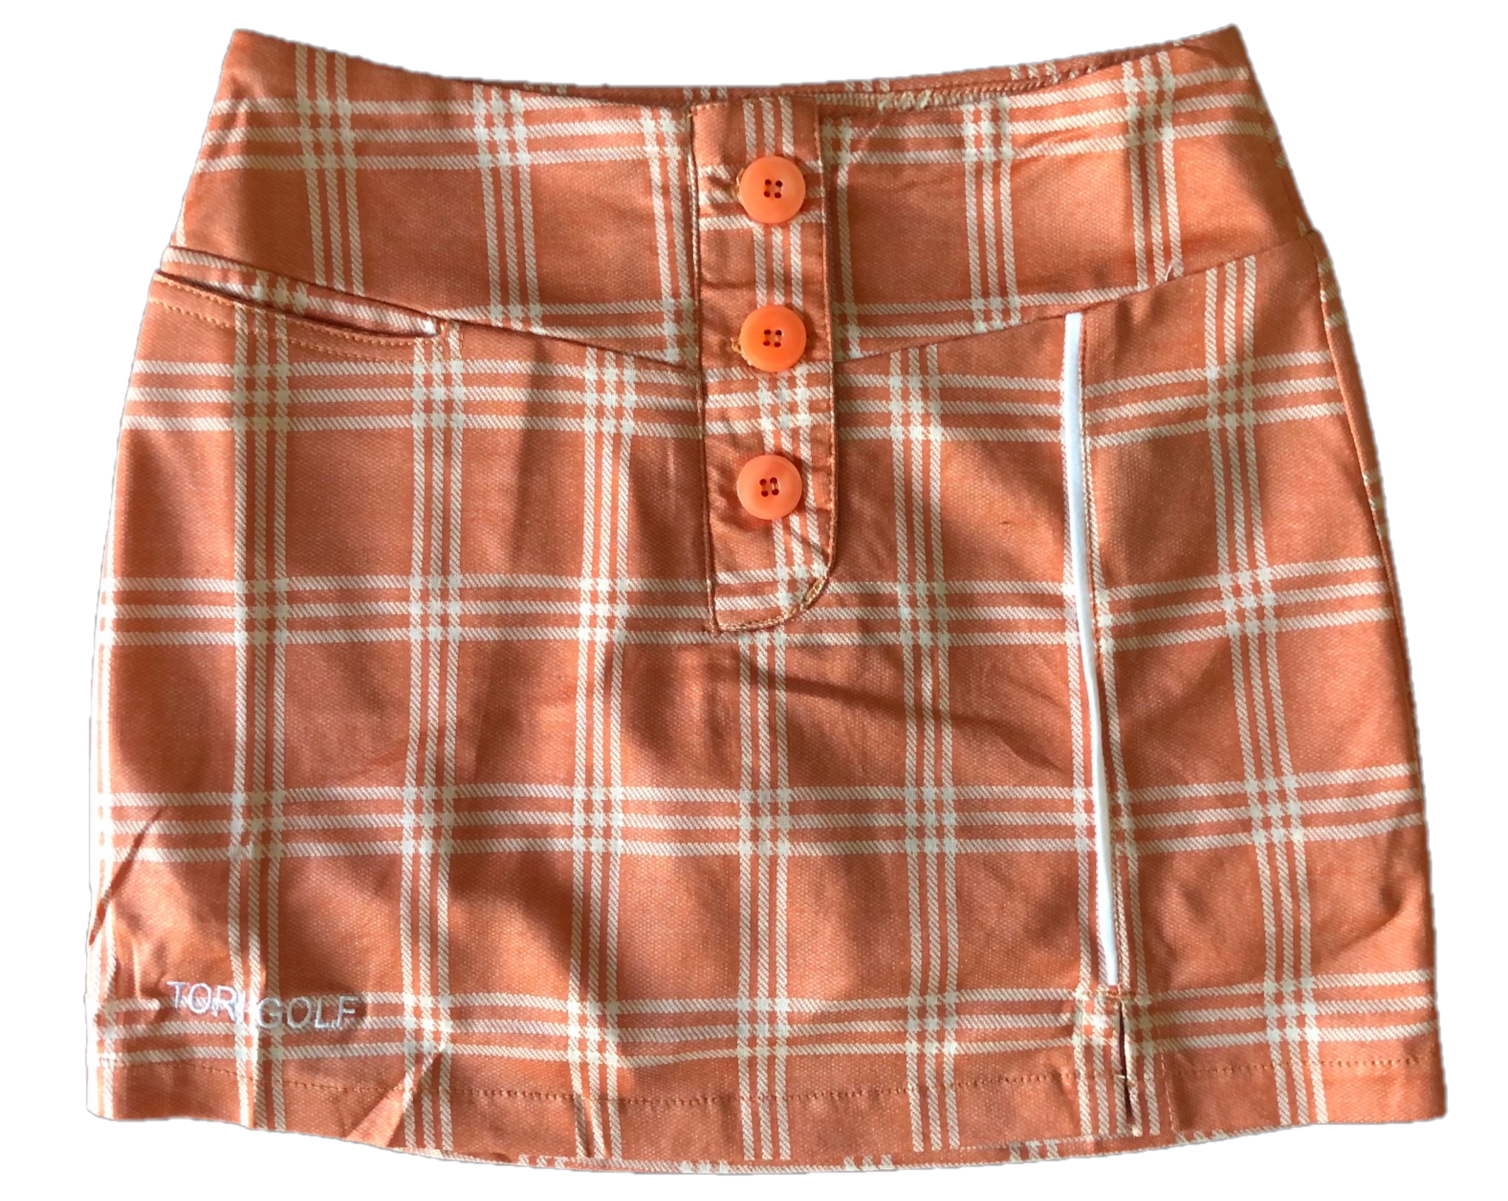 LS-063D    Ladies Skirt  Burnt Orange With White Triple Lined Square Outlines And One Piped White Vertical Stripe 3  Buttons Concealing Zip Fastening 2 Rear Pockets One Front Pocket